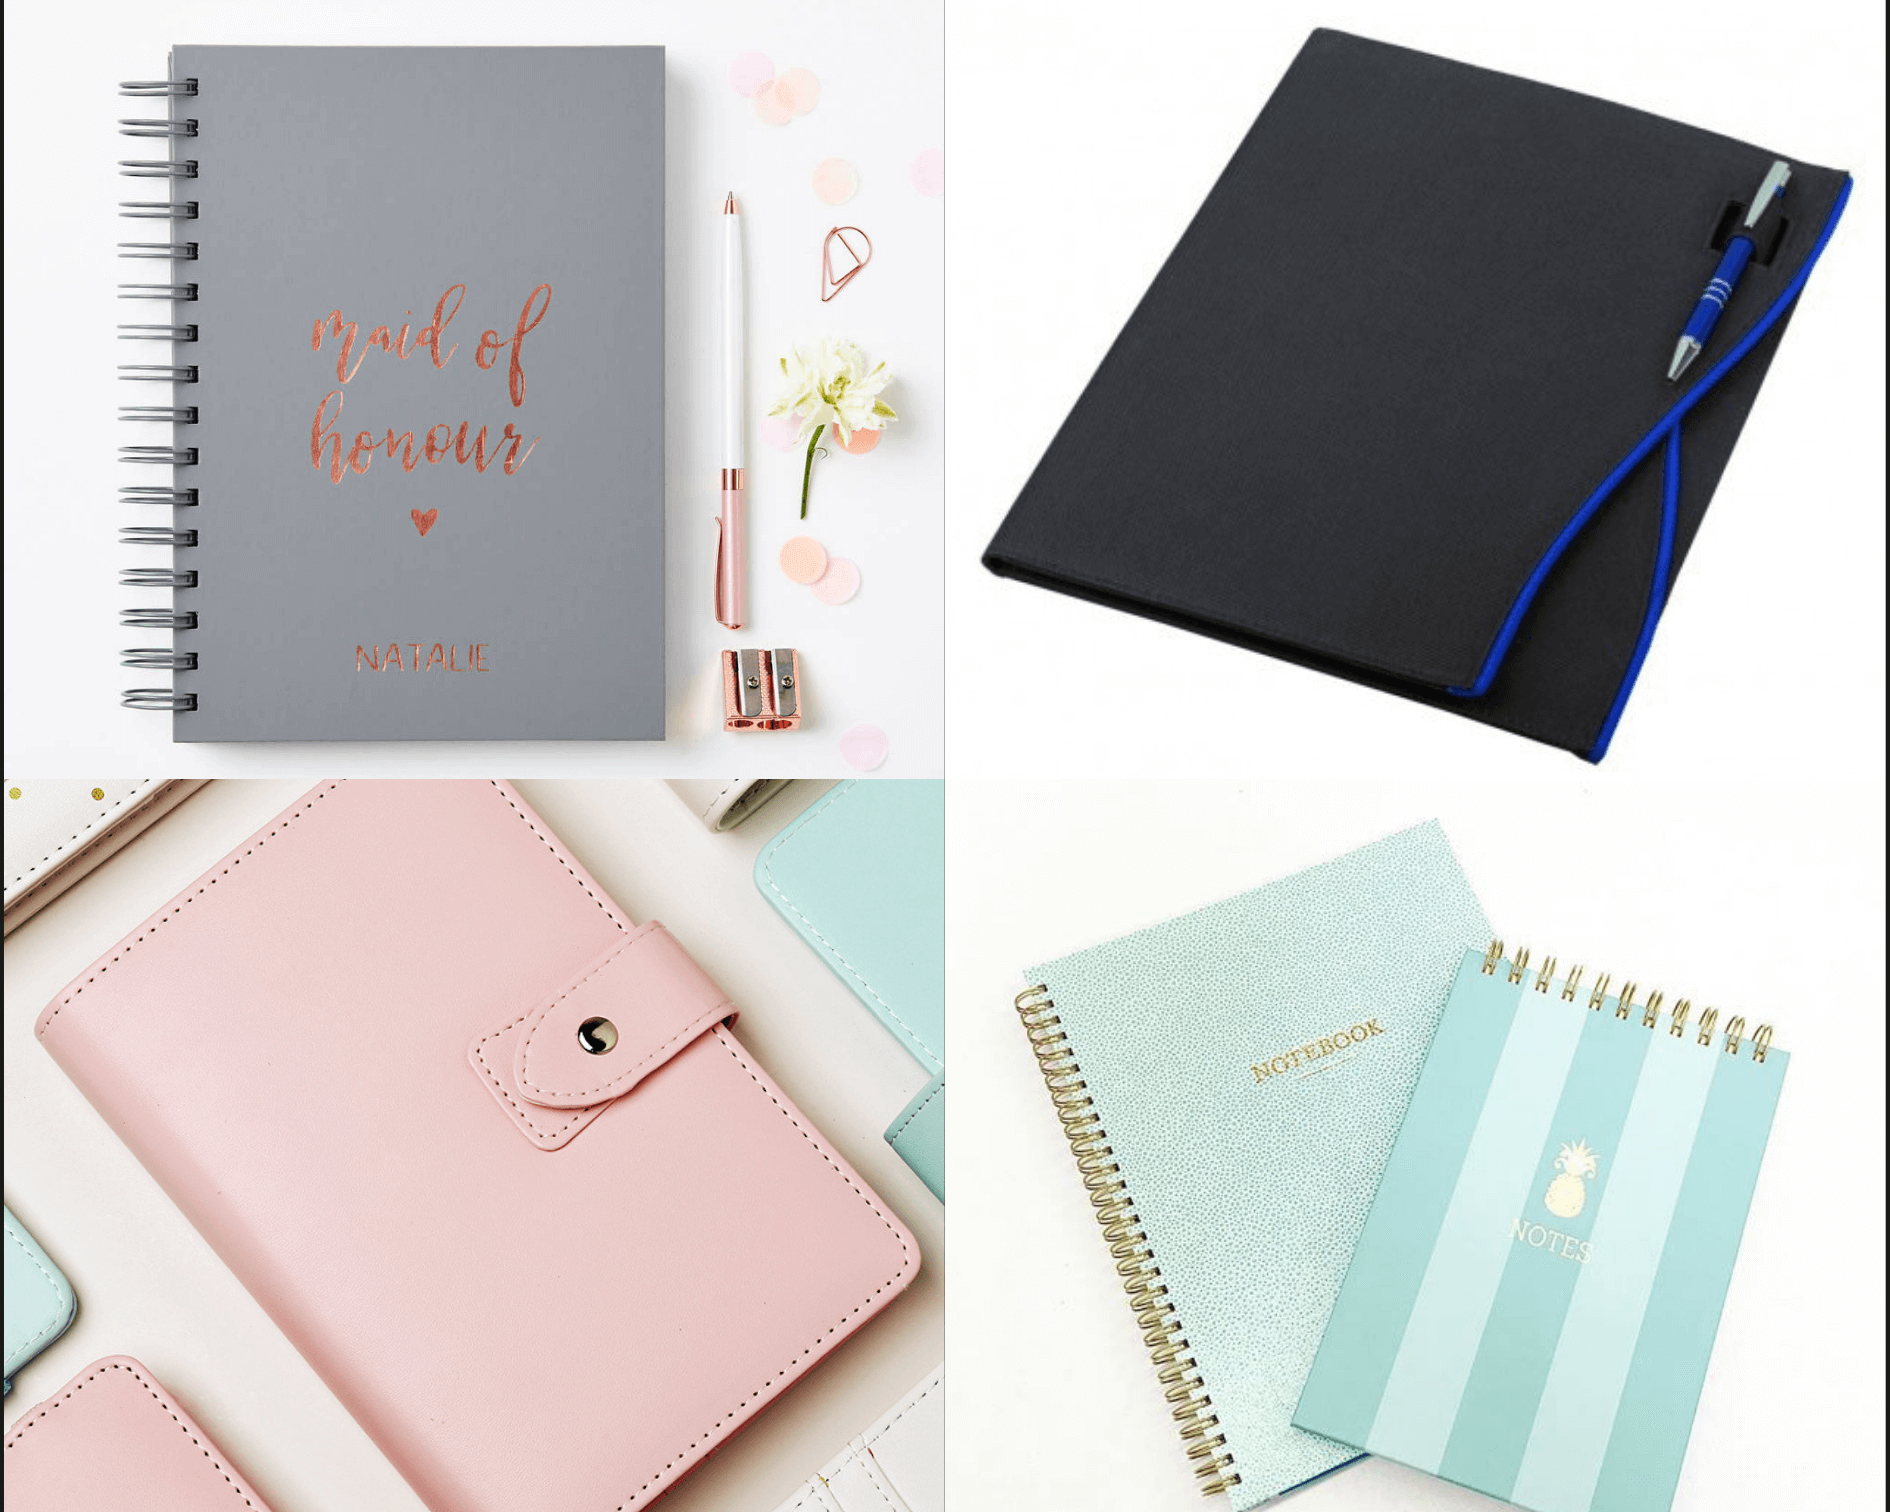 TYPES OF NOTE BOOKS